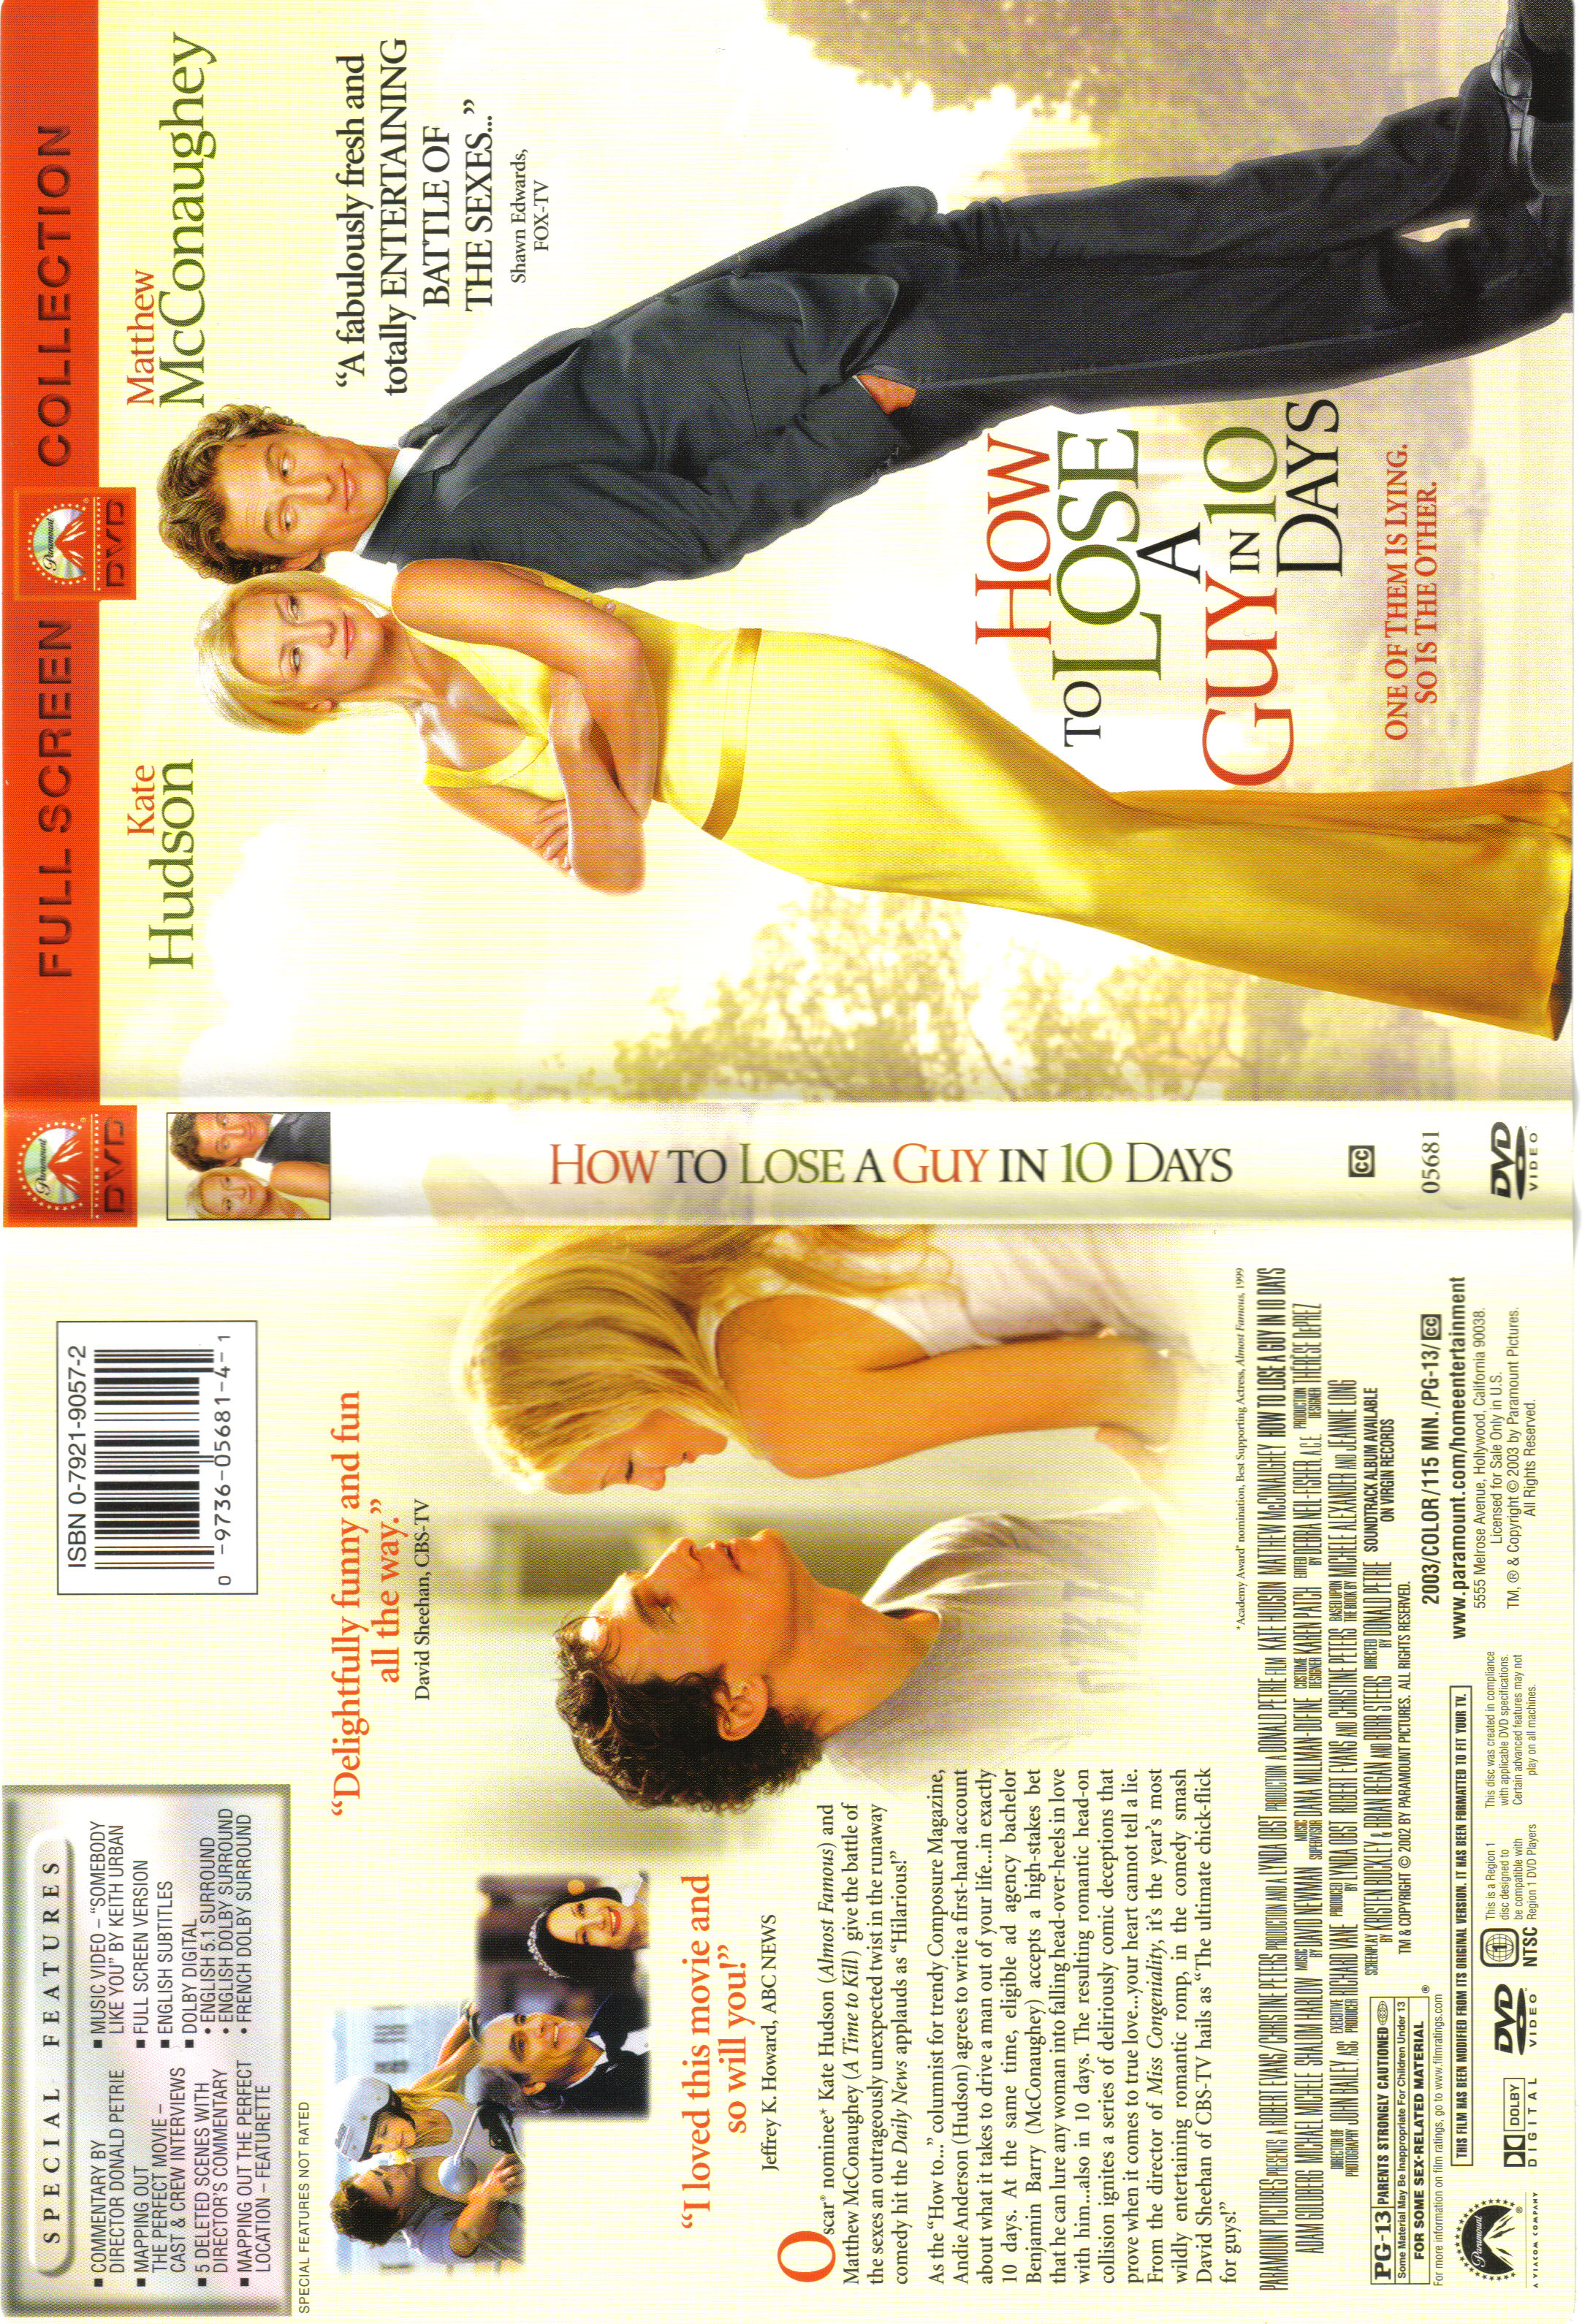 Covers Box Sk How To Lose A Guy In 10 Days 2003 High Quality Dvd Blueray Movie